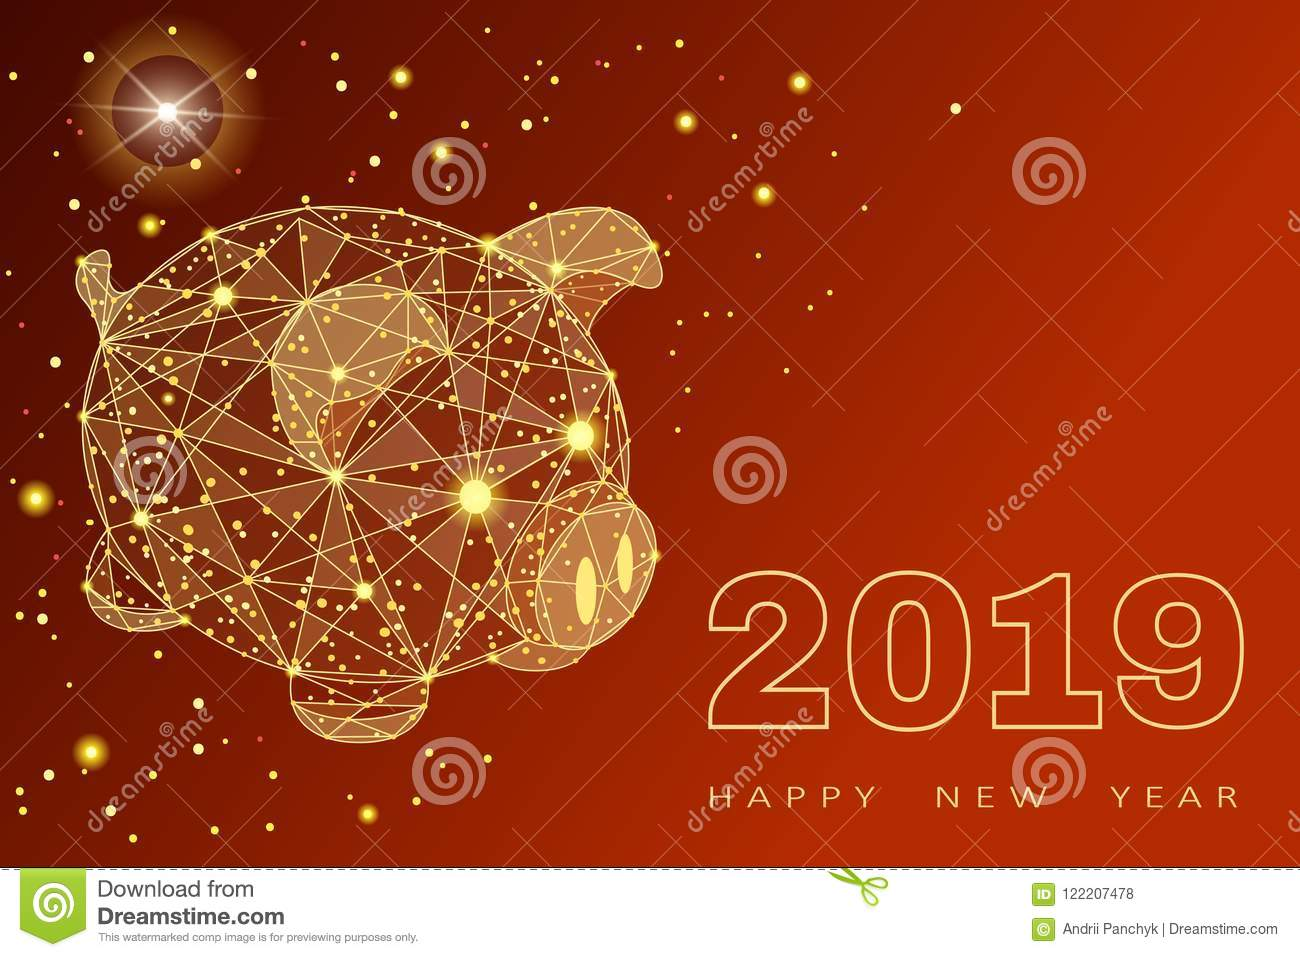 Cute funny pig. Happy New Year. Chinese symbol of the 2019 year. Excellent festive gift card. Vector illustration on red